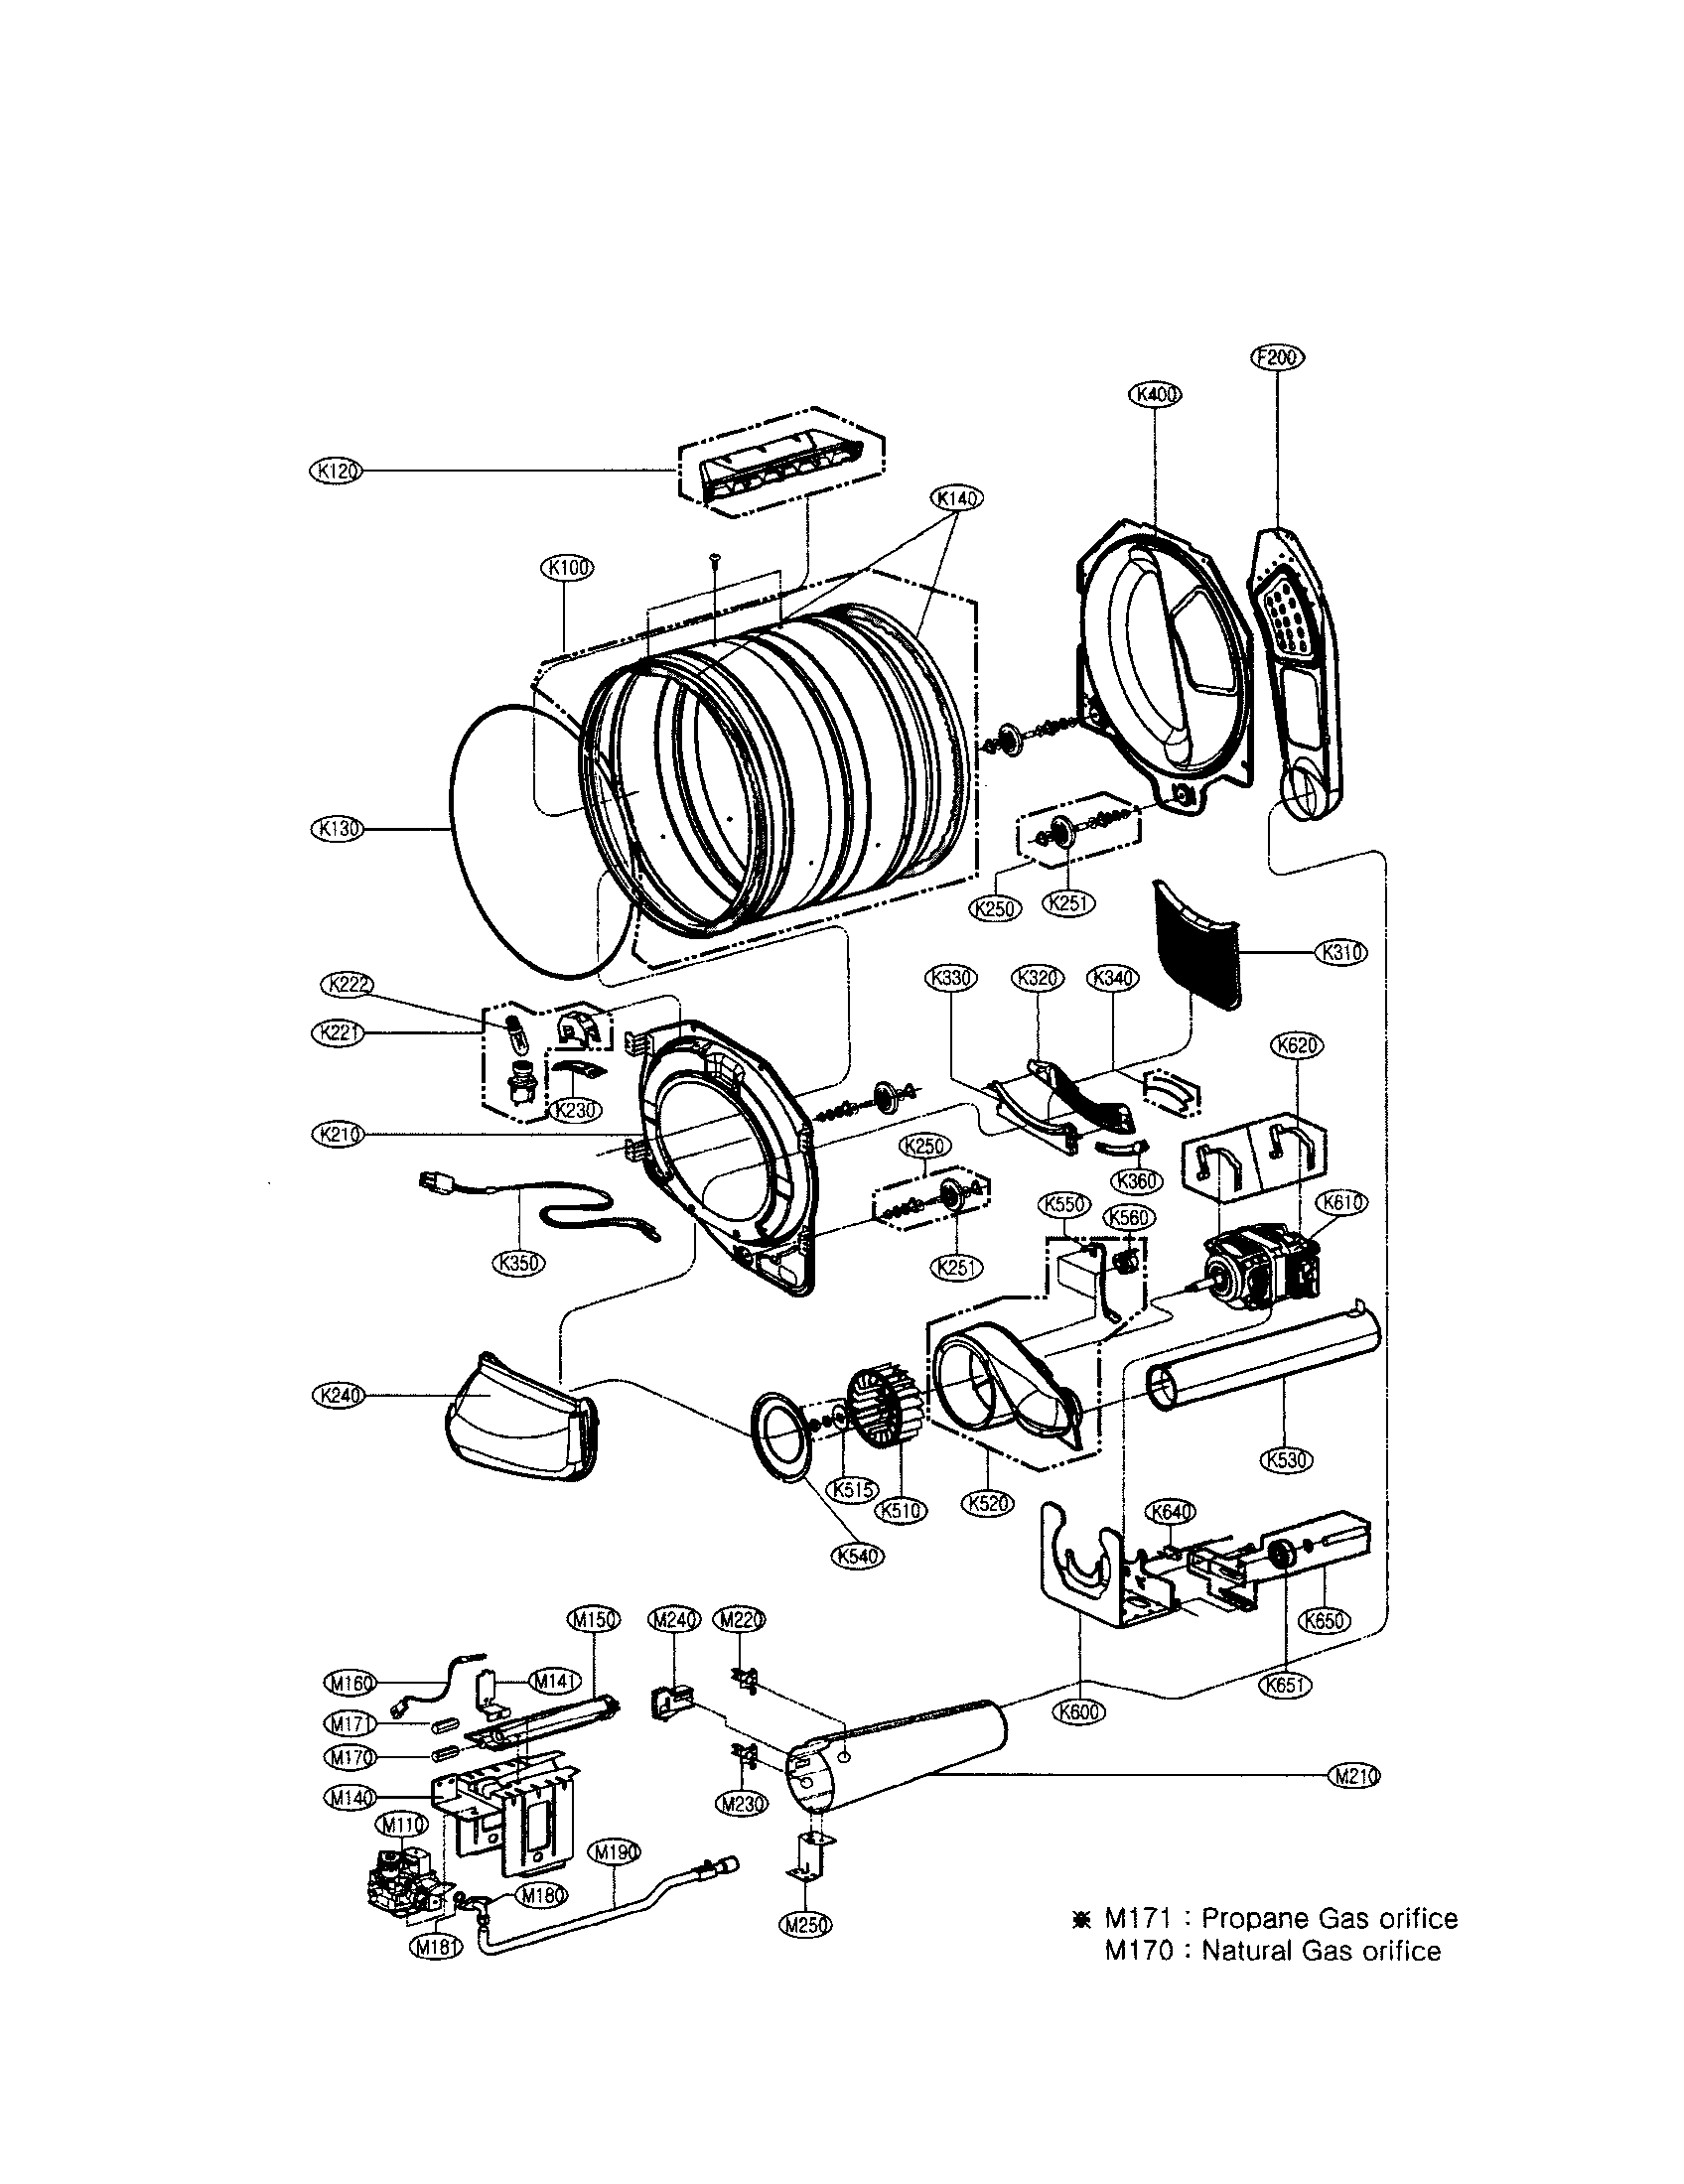 DRUM/MOTOR: GAS TYPE Diagram & Parts List for Model